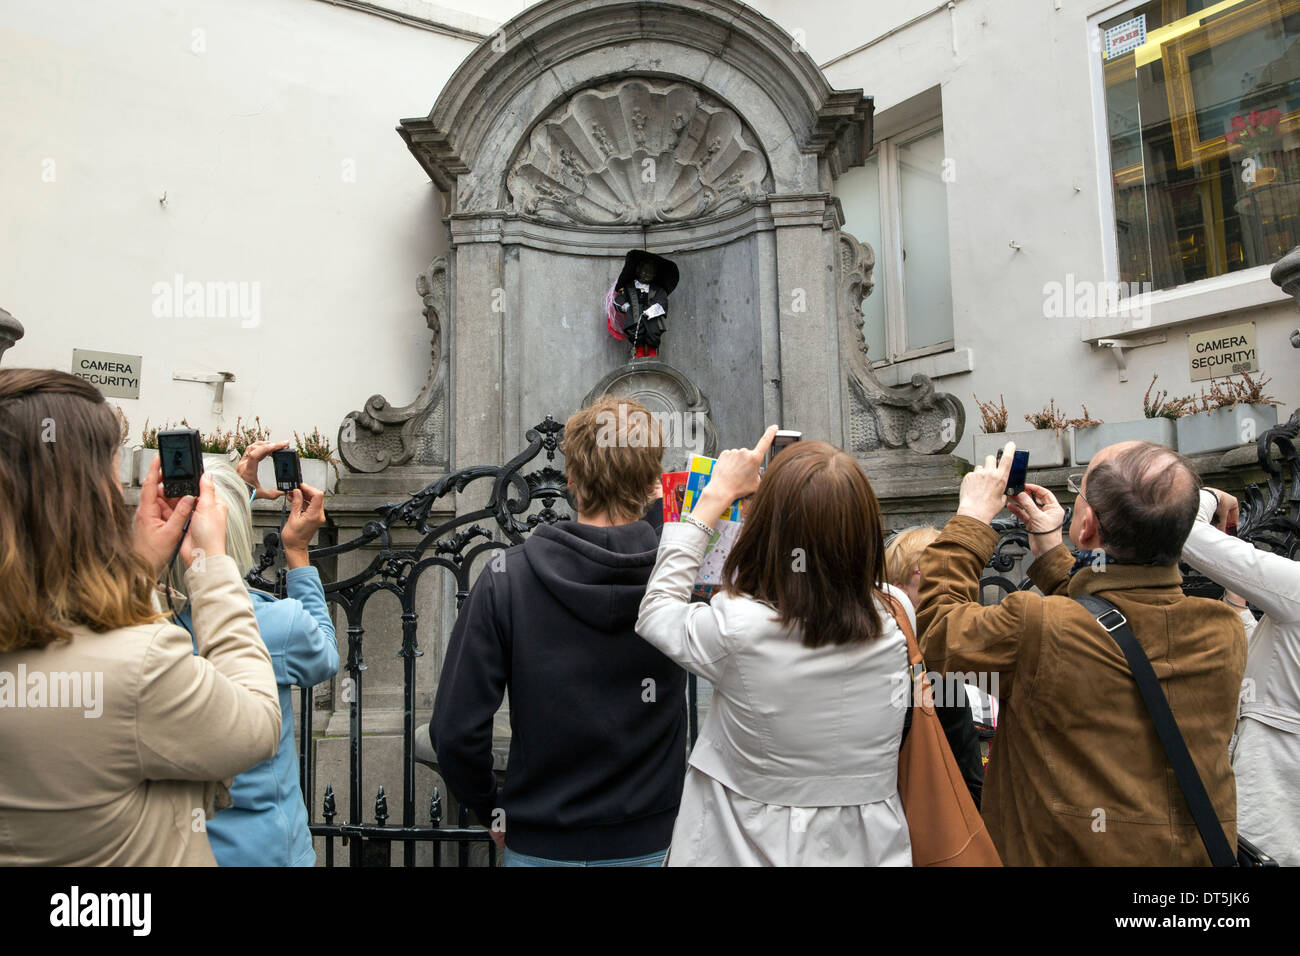 Tourists taking photographs of the Manneken Pis statue in Brussels - Stock Image